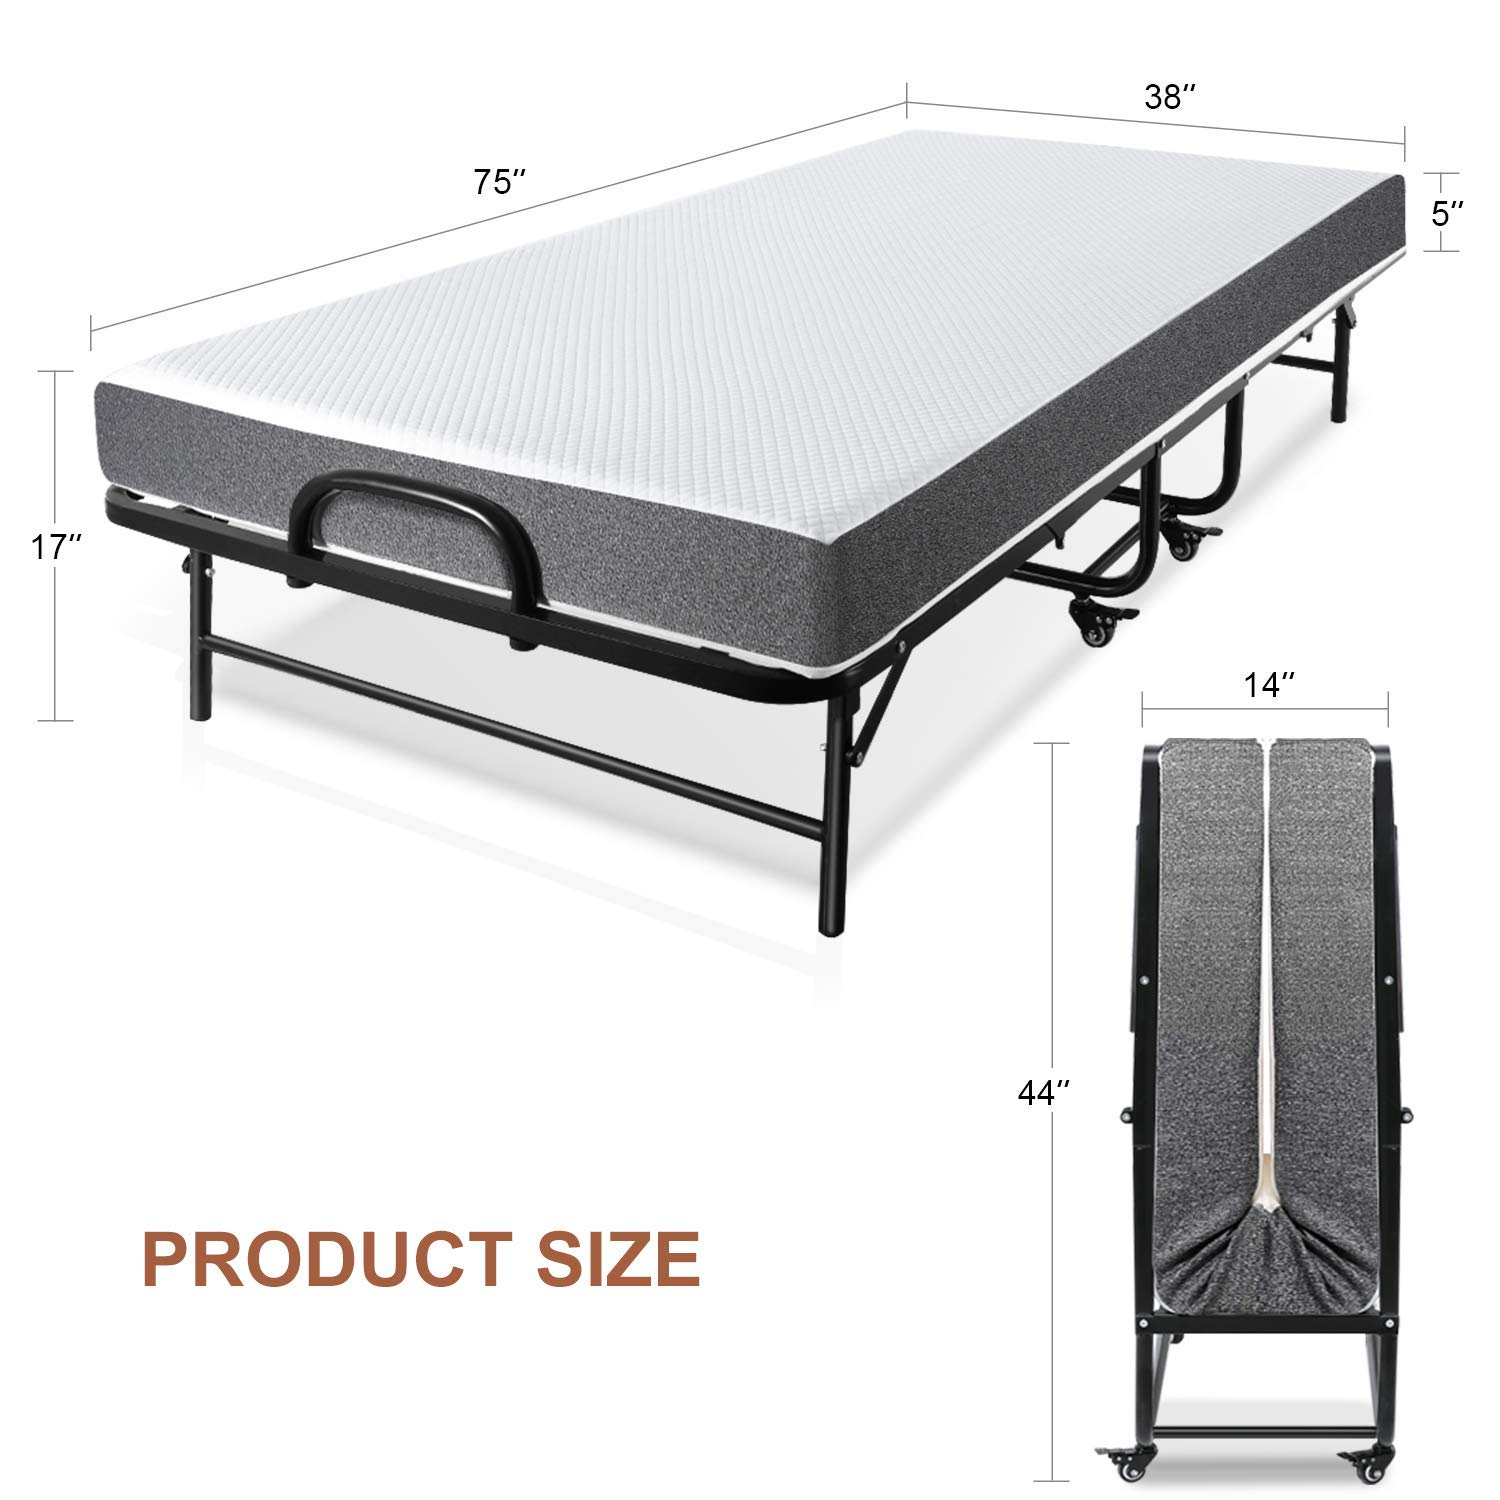 No Tools Required Easy To Assemble Smile Back Folding Bed Rollaway Bed with Mattress for Adults Fold Foldable Guest Beds Portable Beds Twin Size 5 Inch Memory Foam Mattress